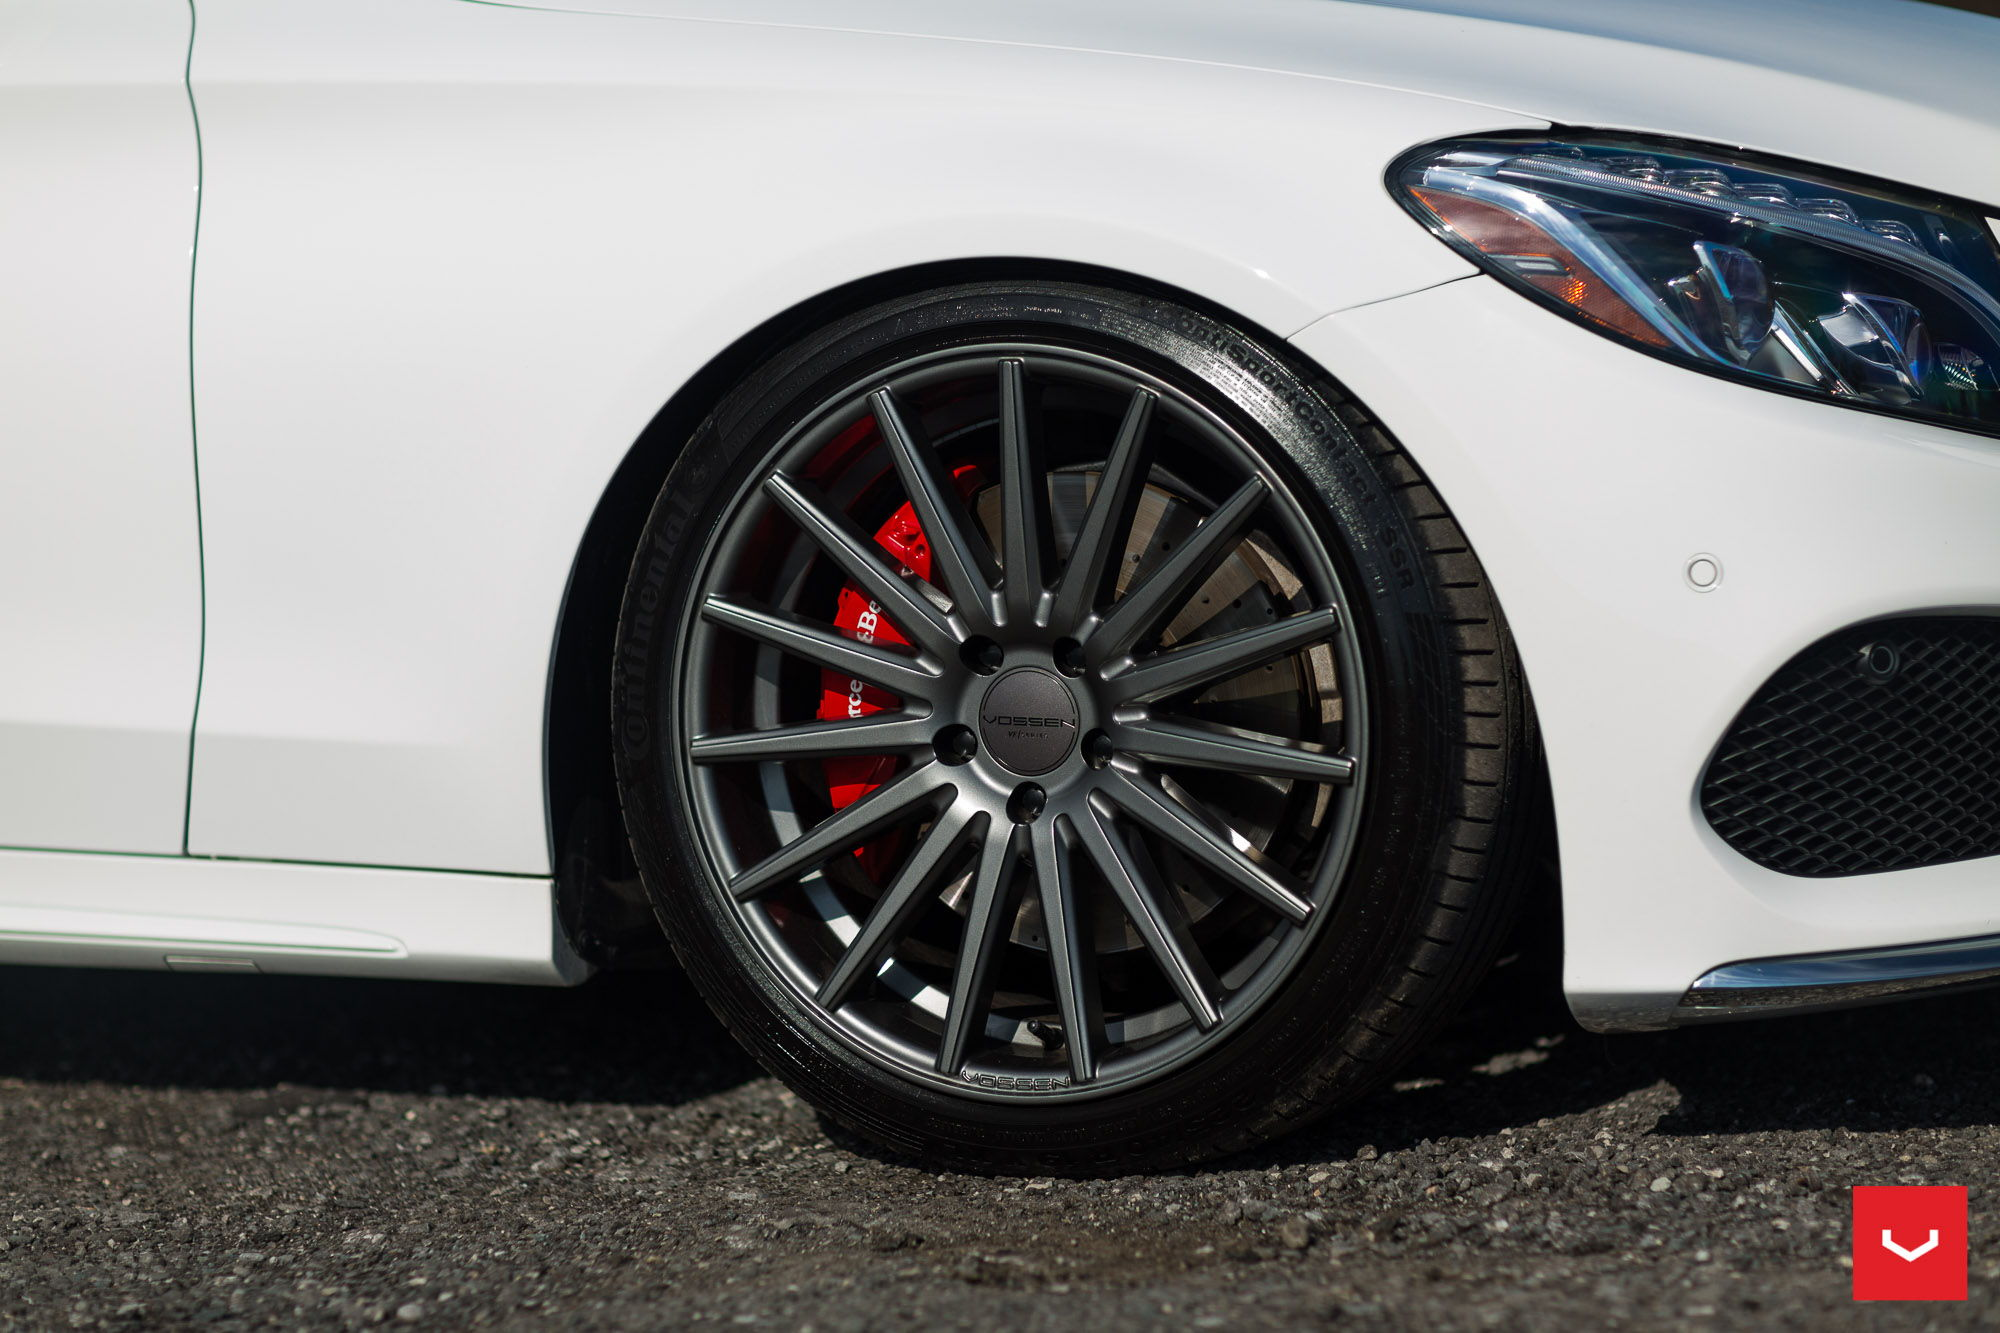 Mb Red Brake Caliper Swap For C300 Page 2 Mbworld